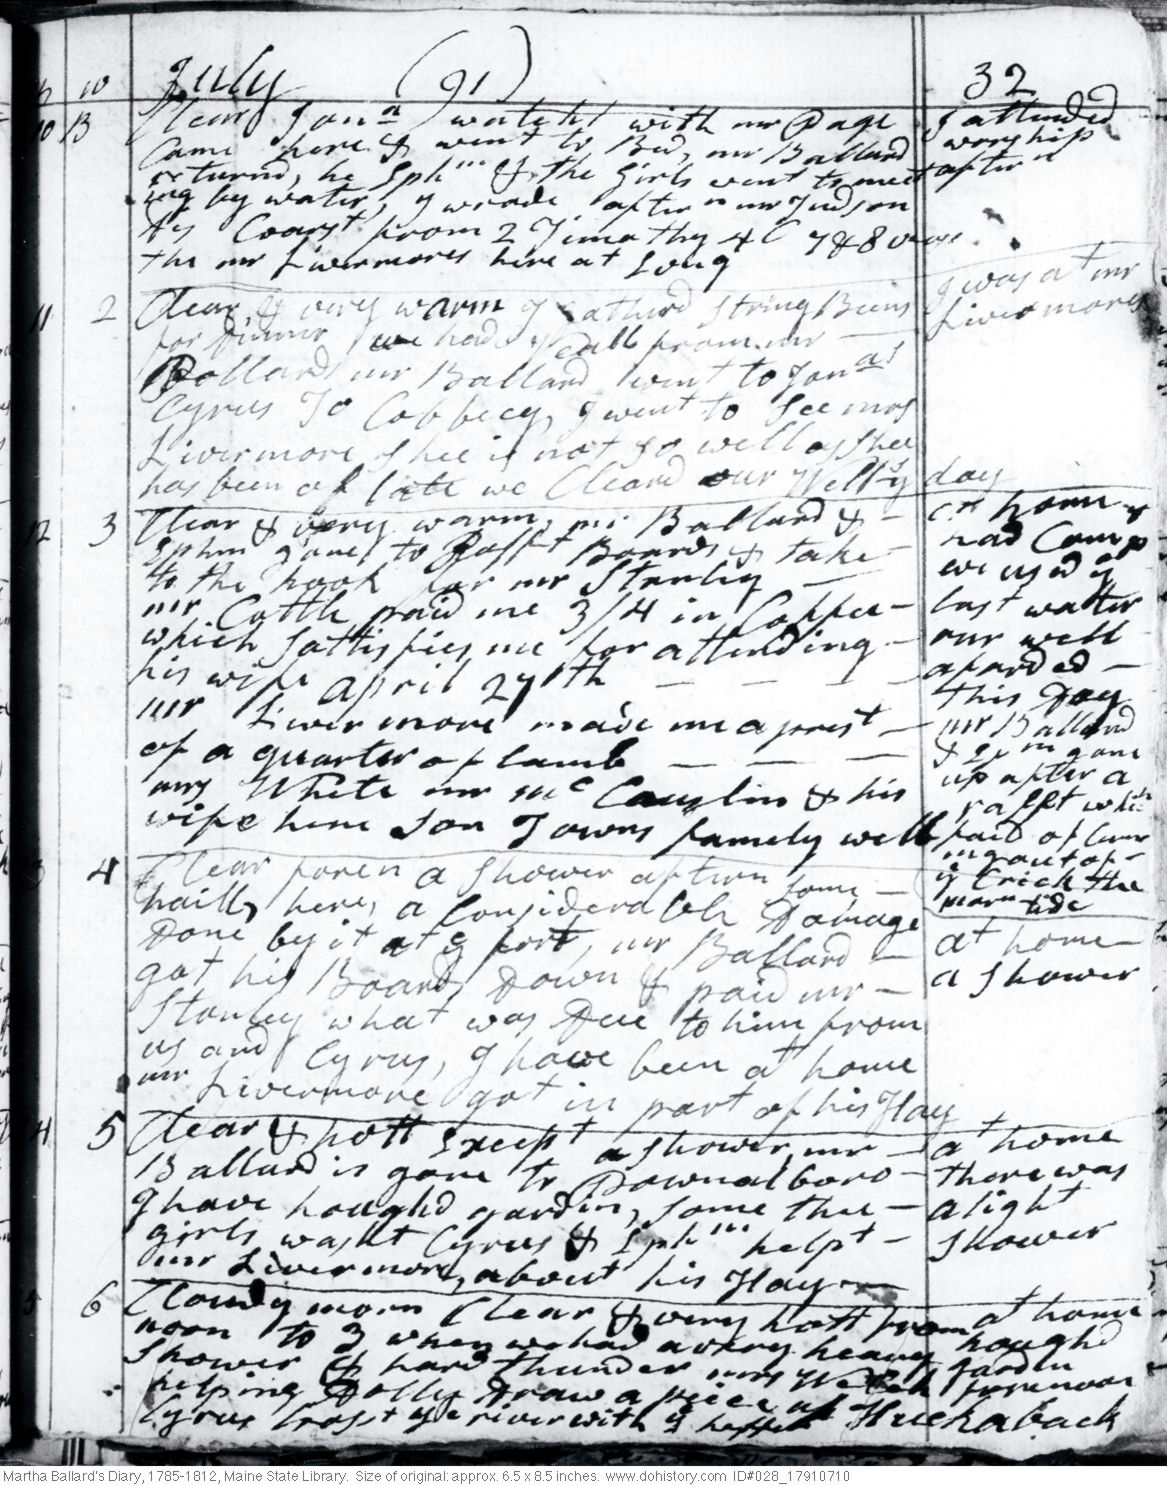 martha ballard Martha ballard's diary contains almost 10,000 made between january 1, 1785 and may 12, 1812, being an unparalleled document in early american history.